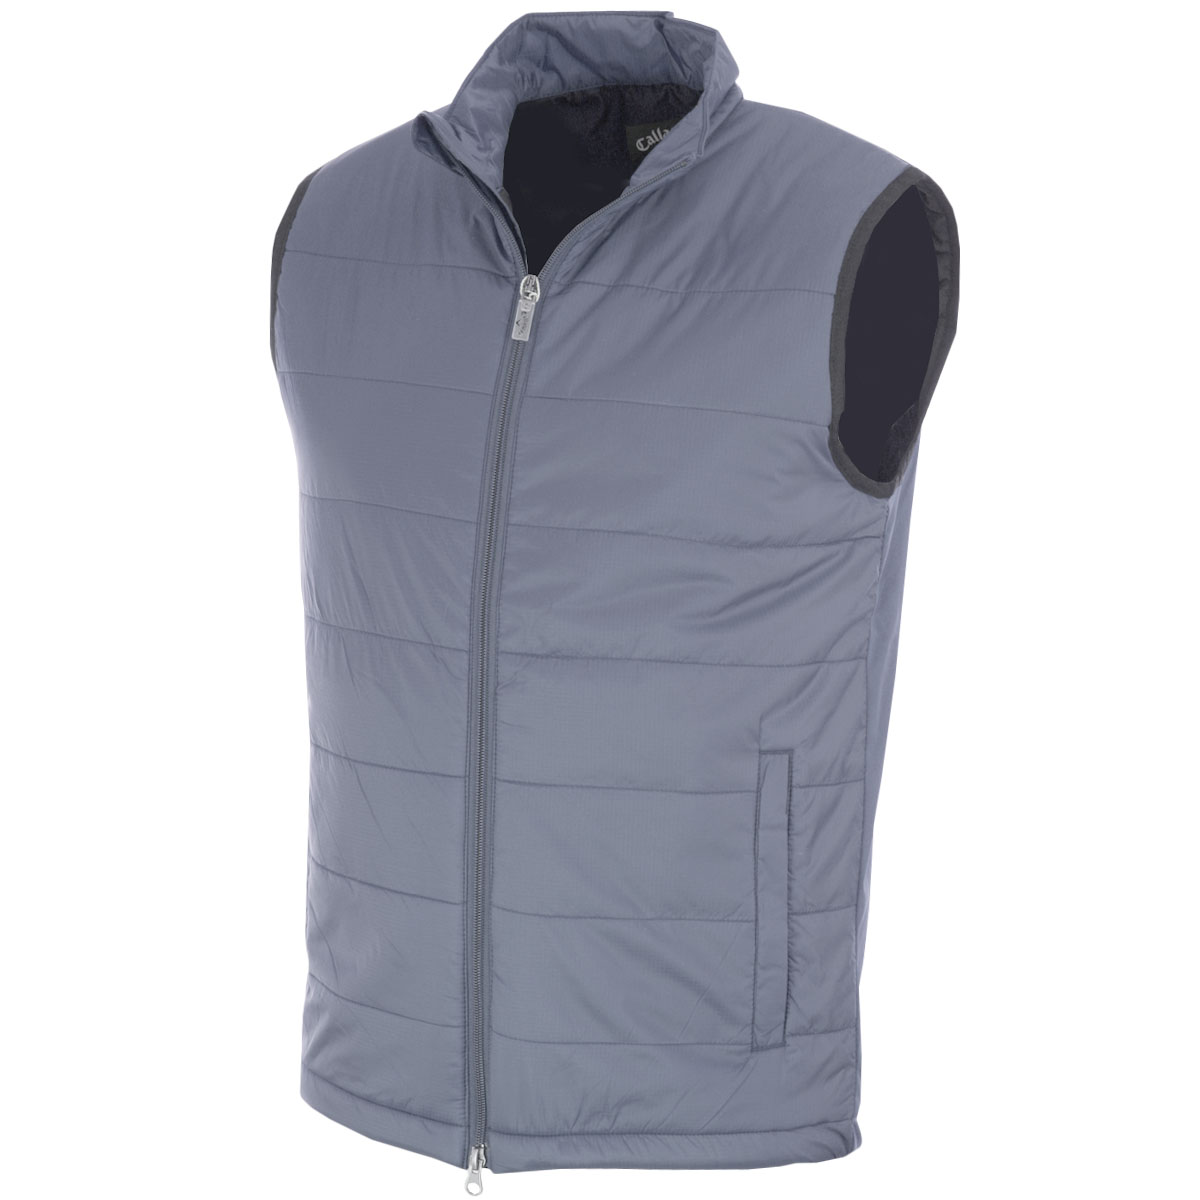 Callaway Golf Mens Puffer Fiber Filled Vest Sleeveless